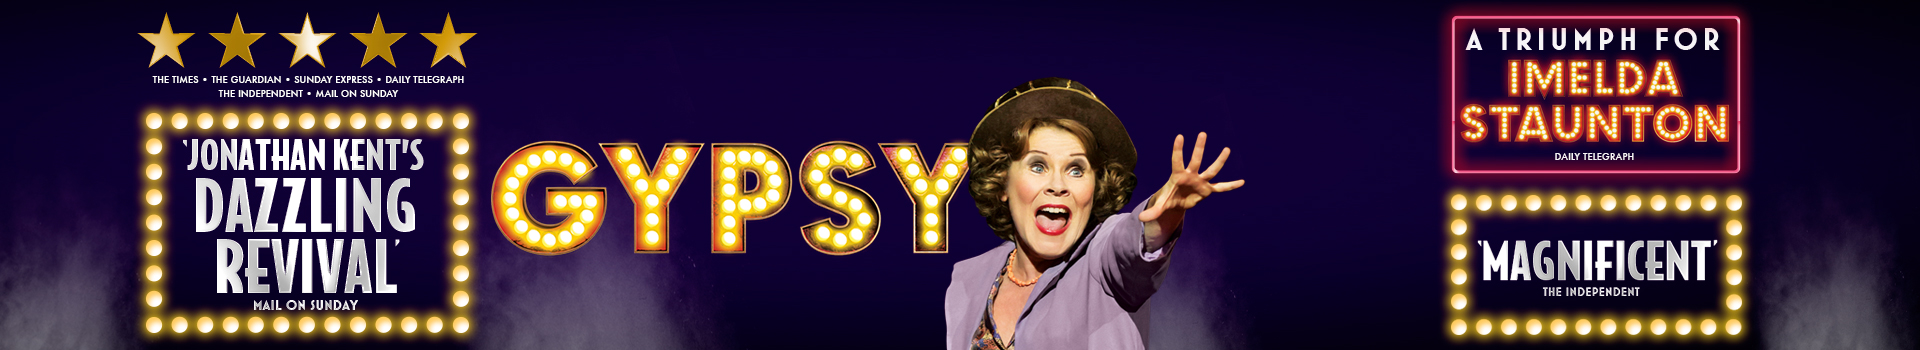 Gypsy banner image